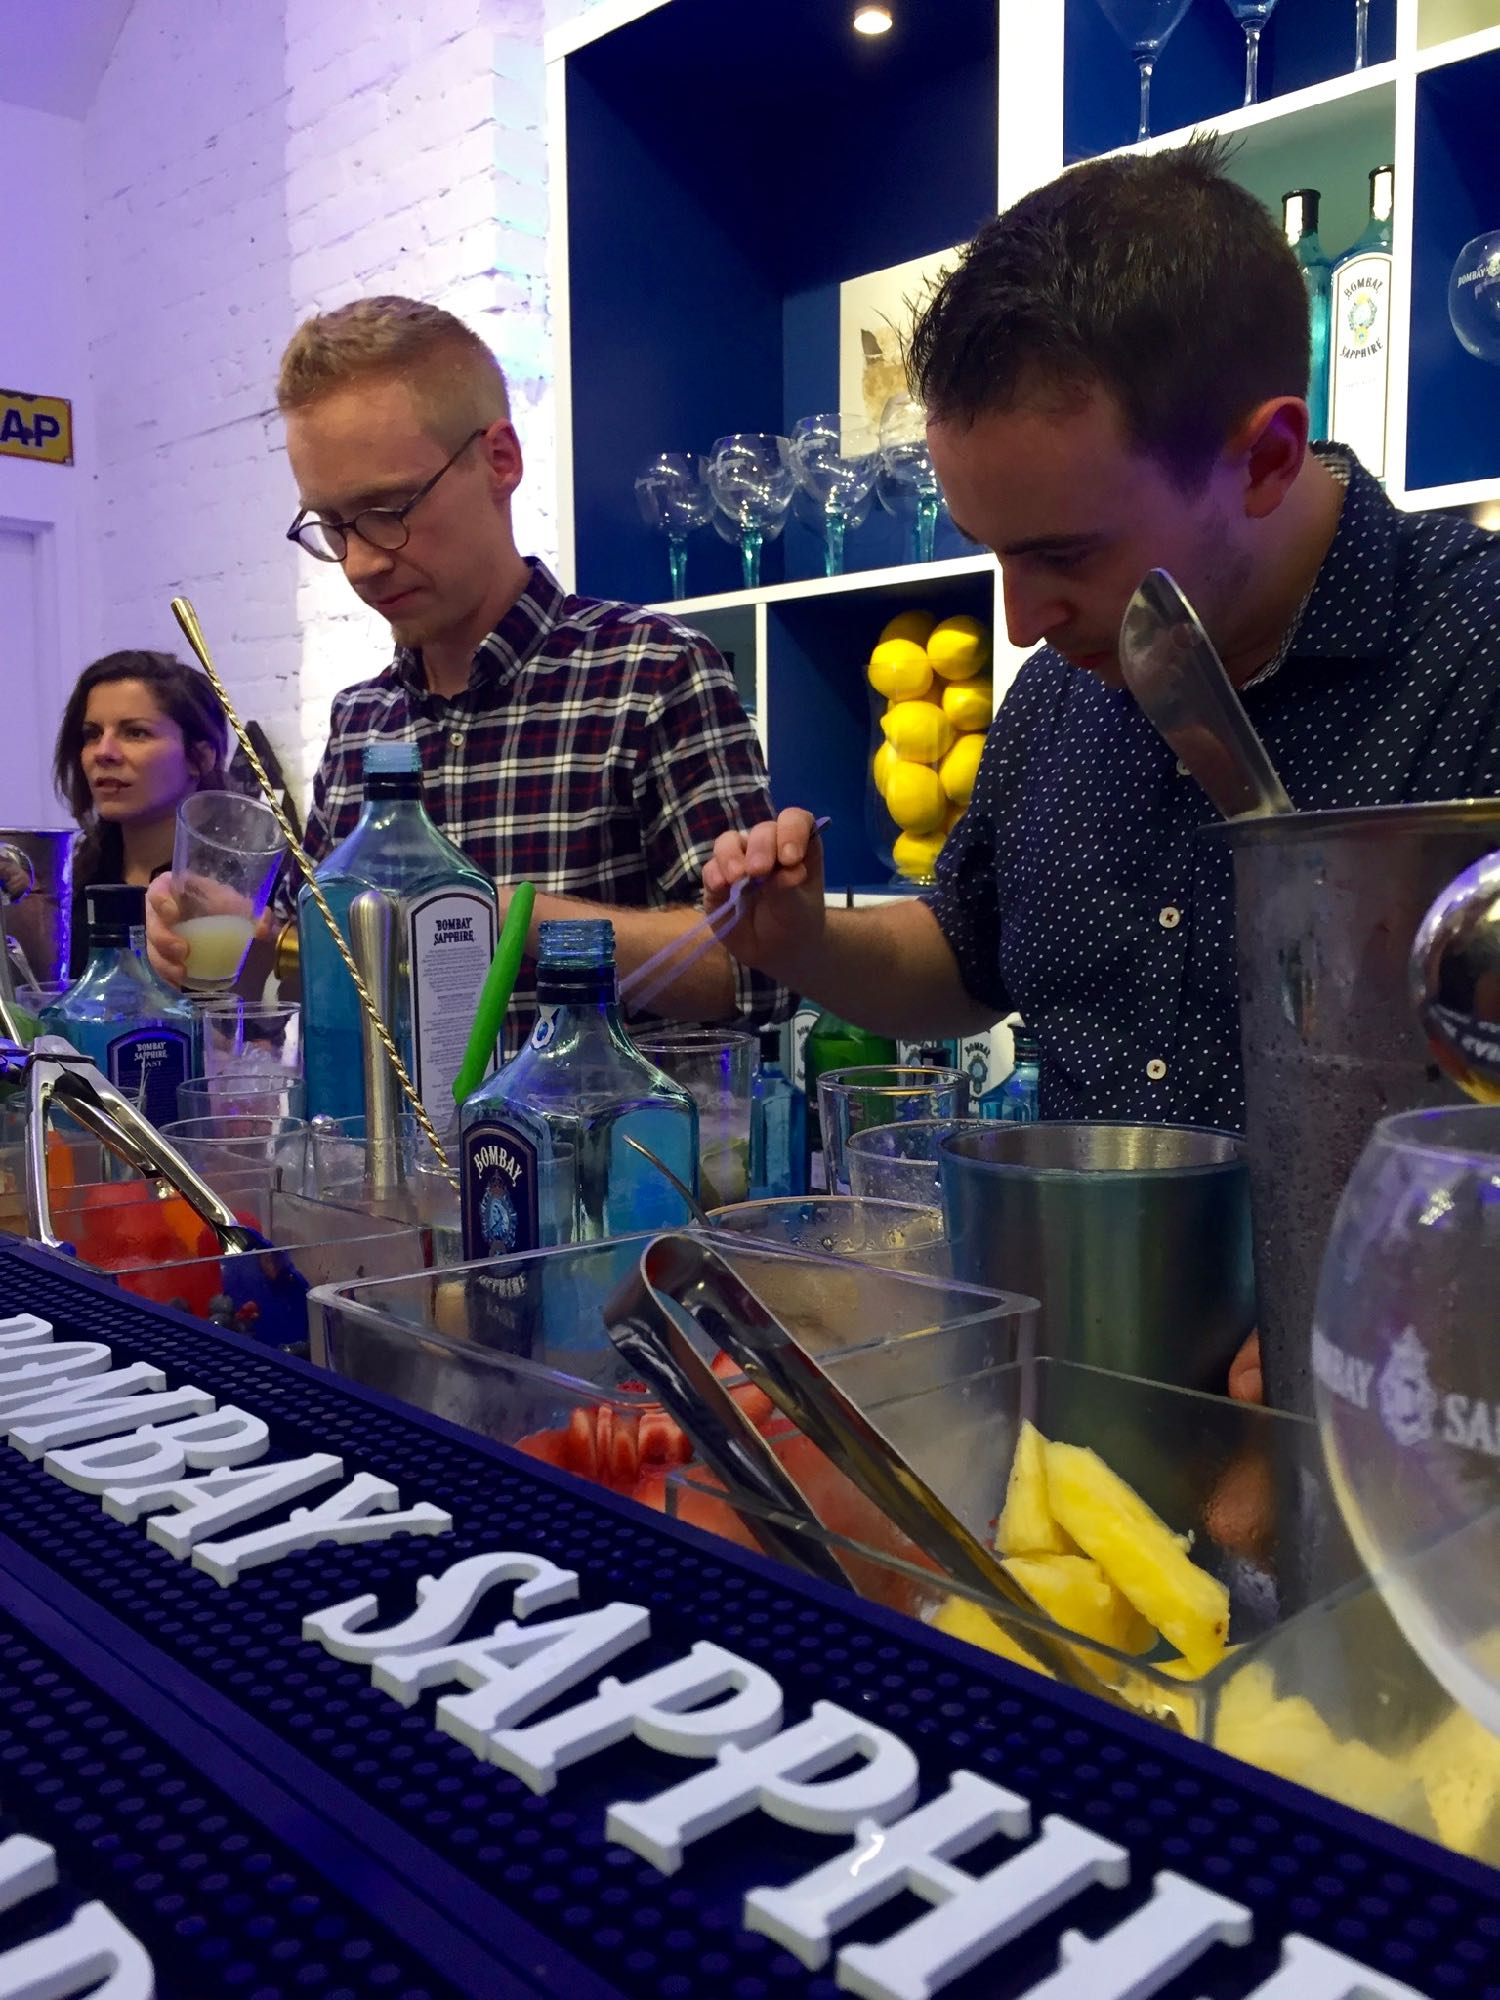 Mixologists Preparing Delicious Bombay Sapphire Gin Cocktails